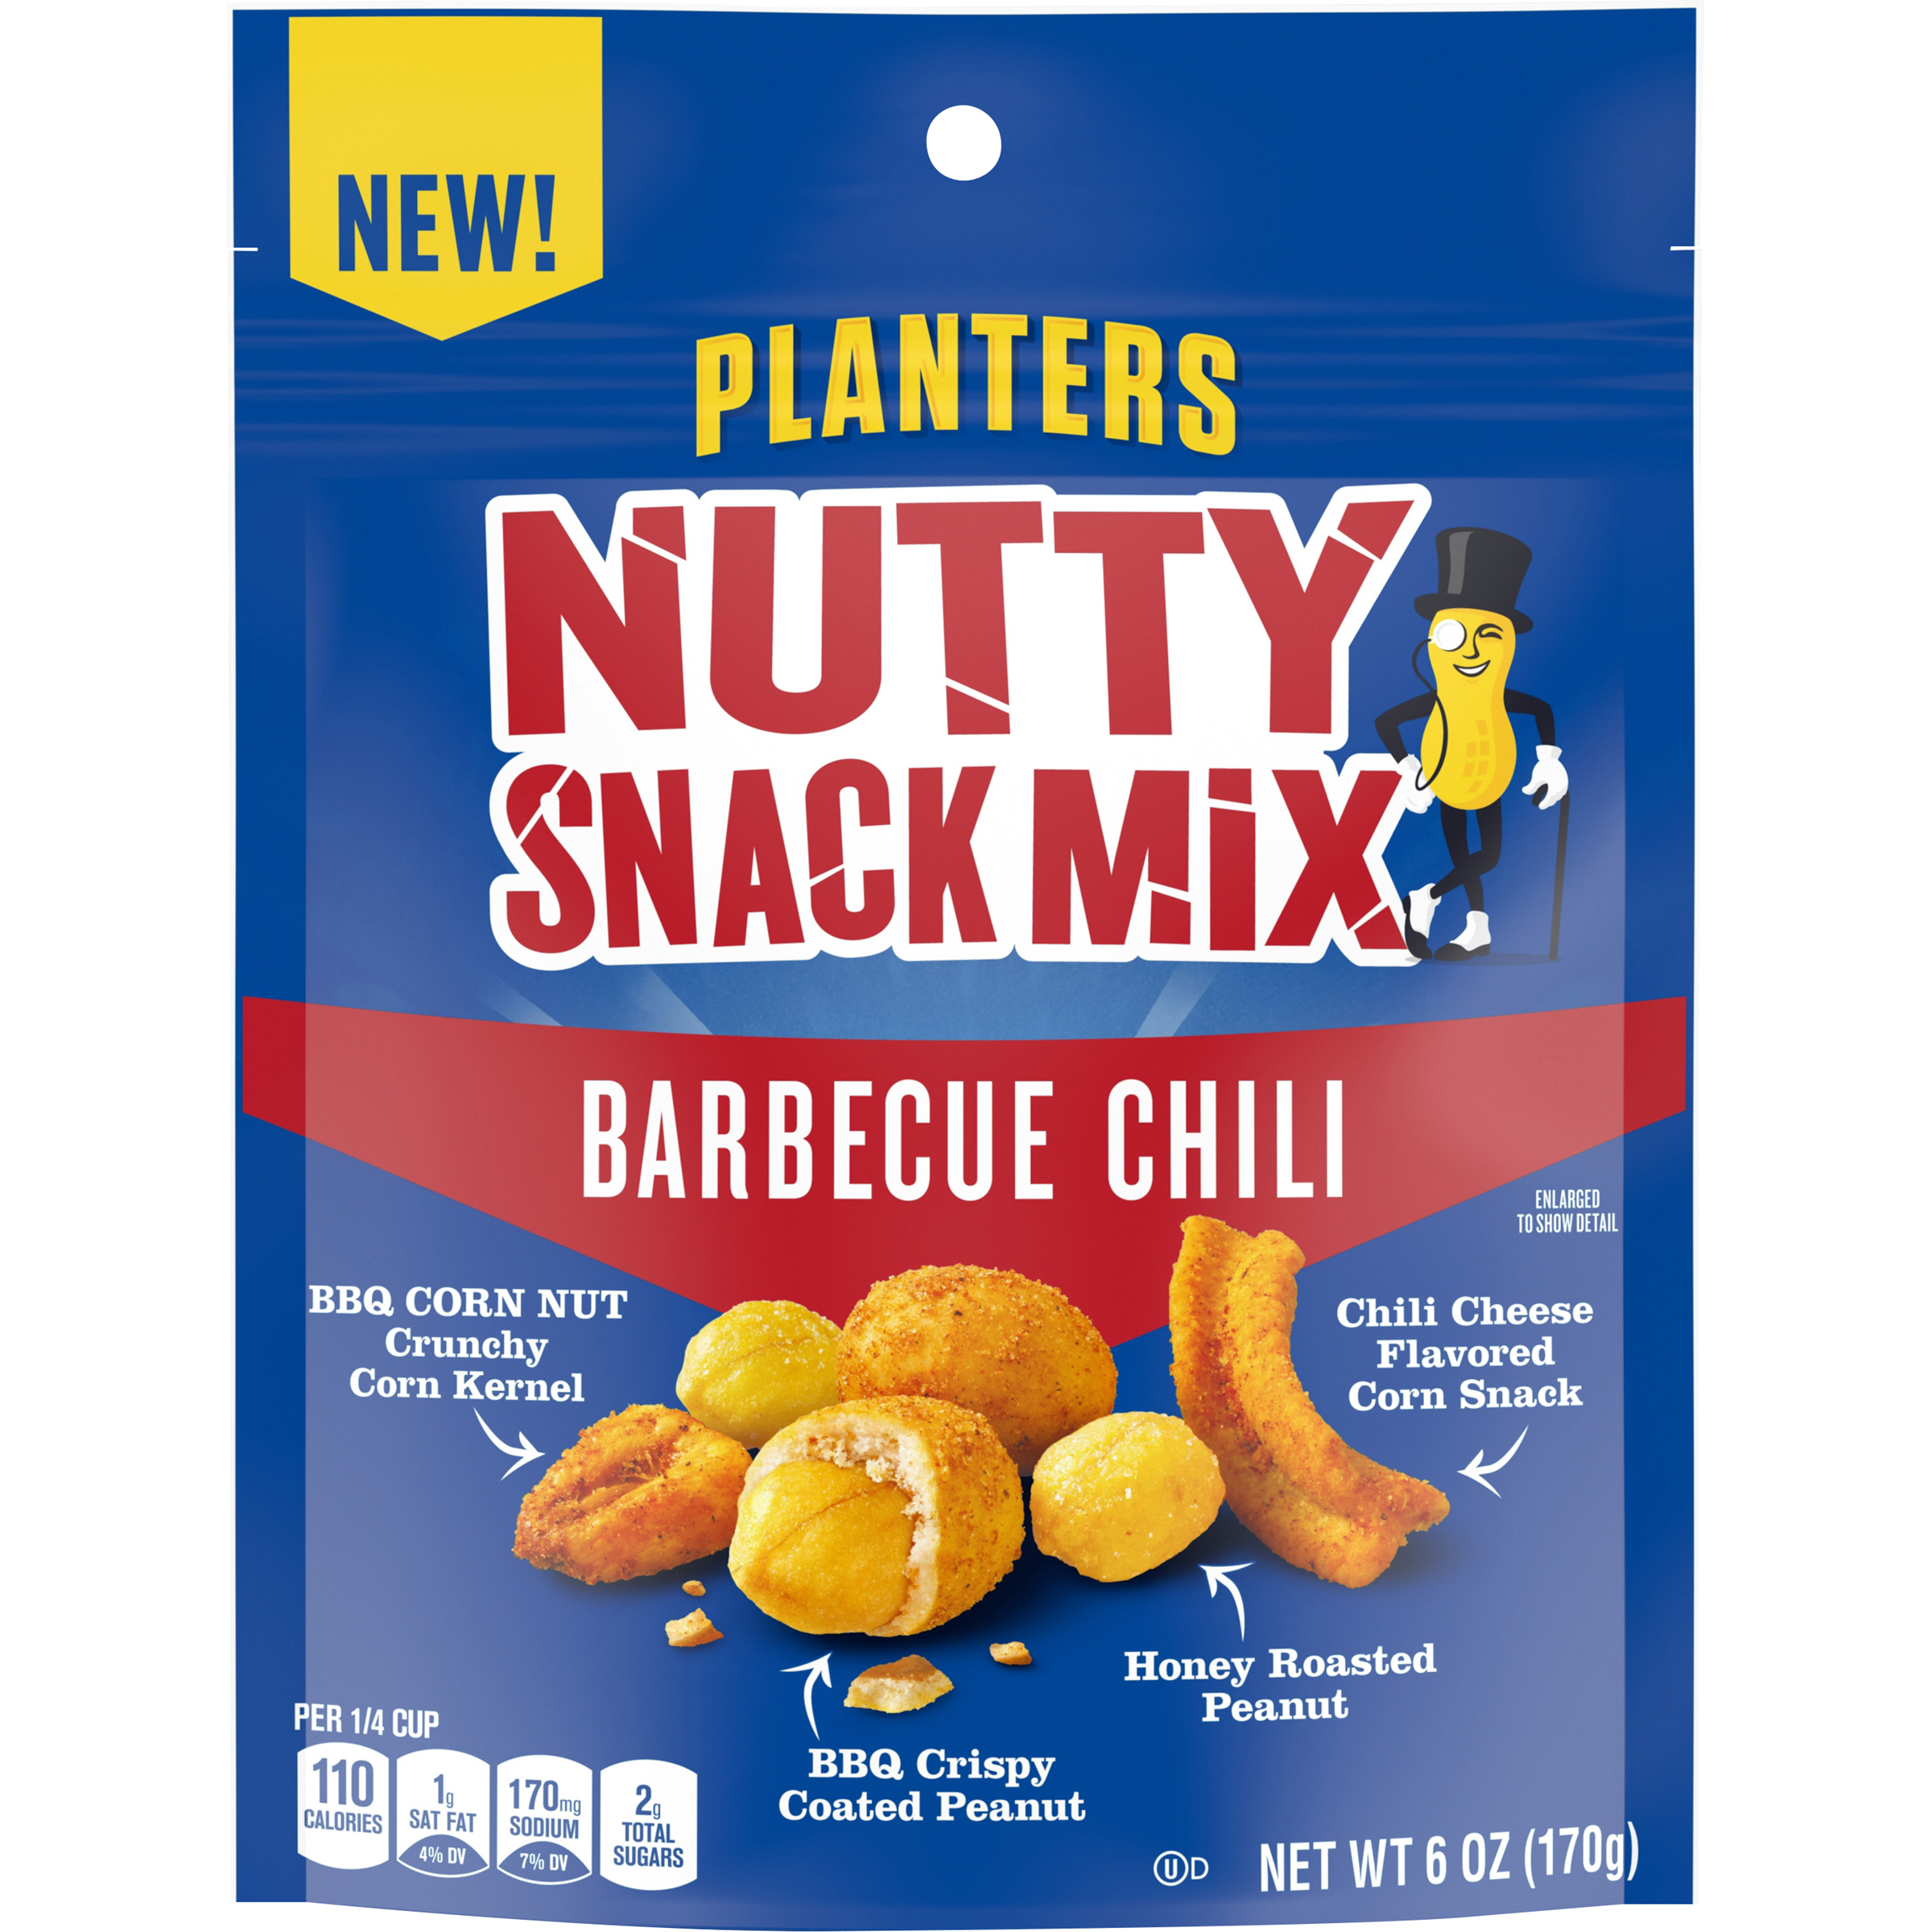 Planters BBQ Chili Nutty Snack Mix with Corn Nuts, 6 oz Bag image